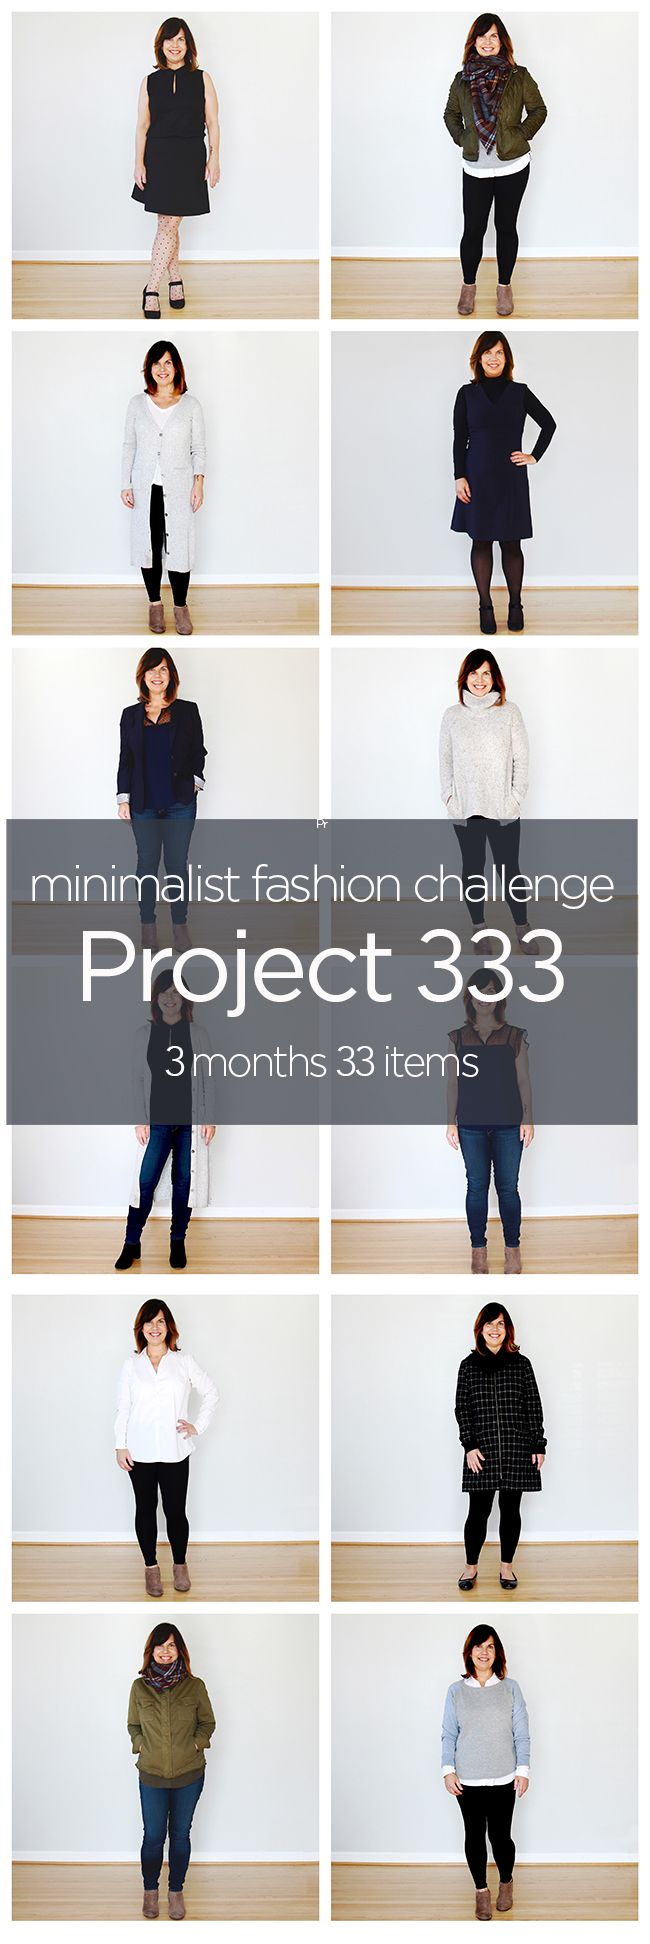 "One of my first challenges in minimalism and my ""gateway drug"" - I still have a very small wardrobe and challenge many of my friends to do Project 333!"